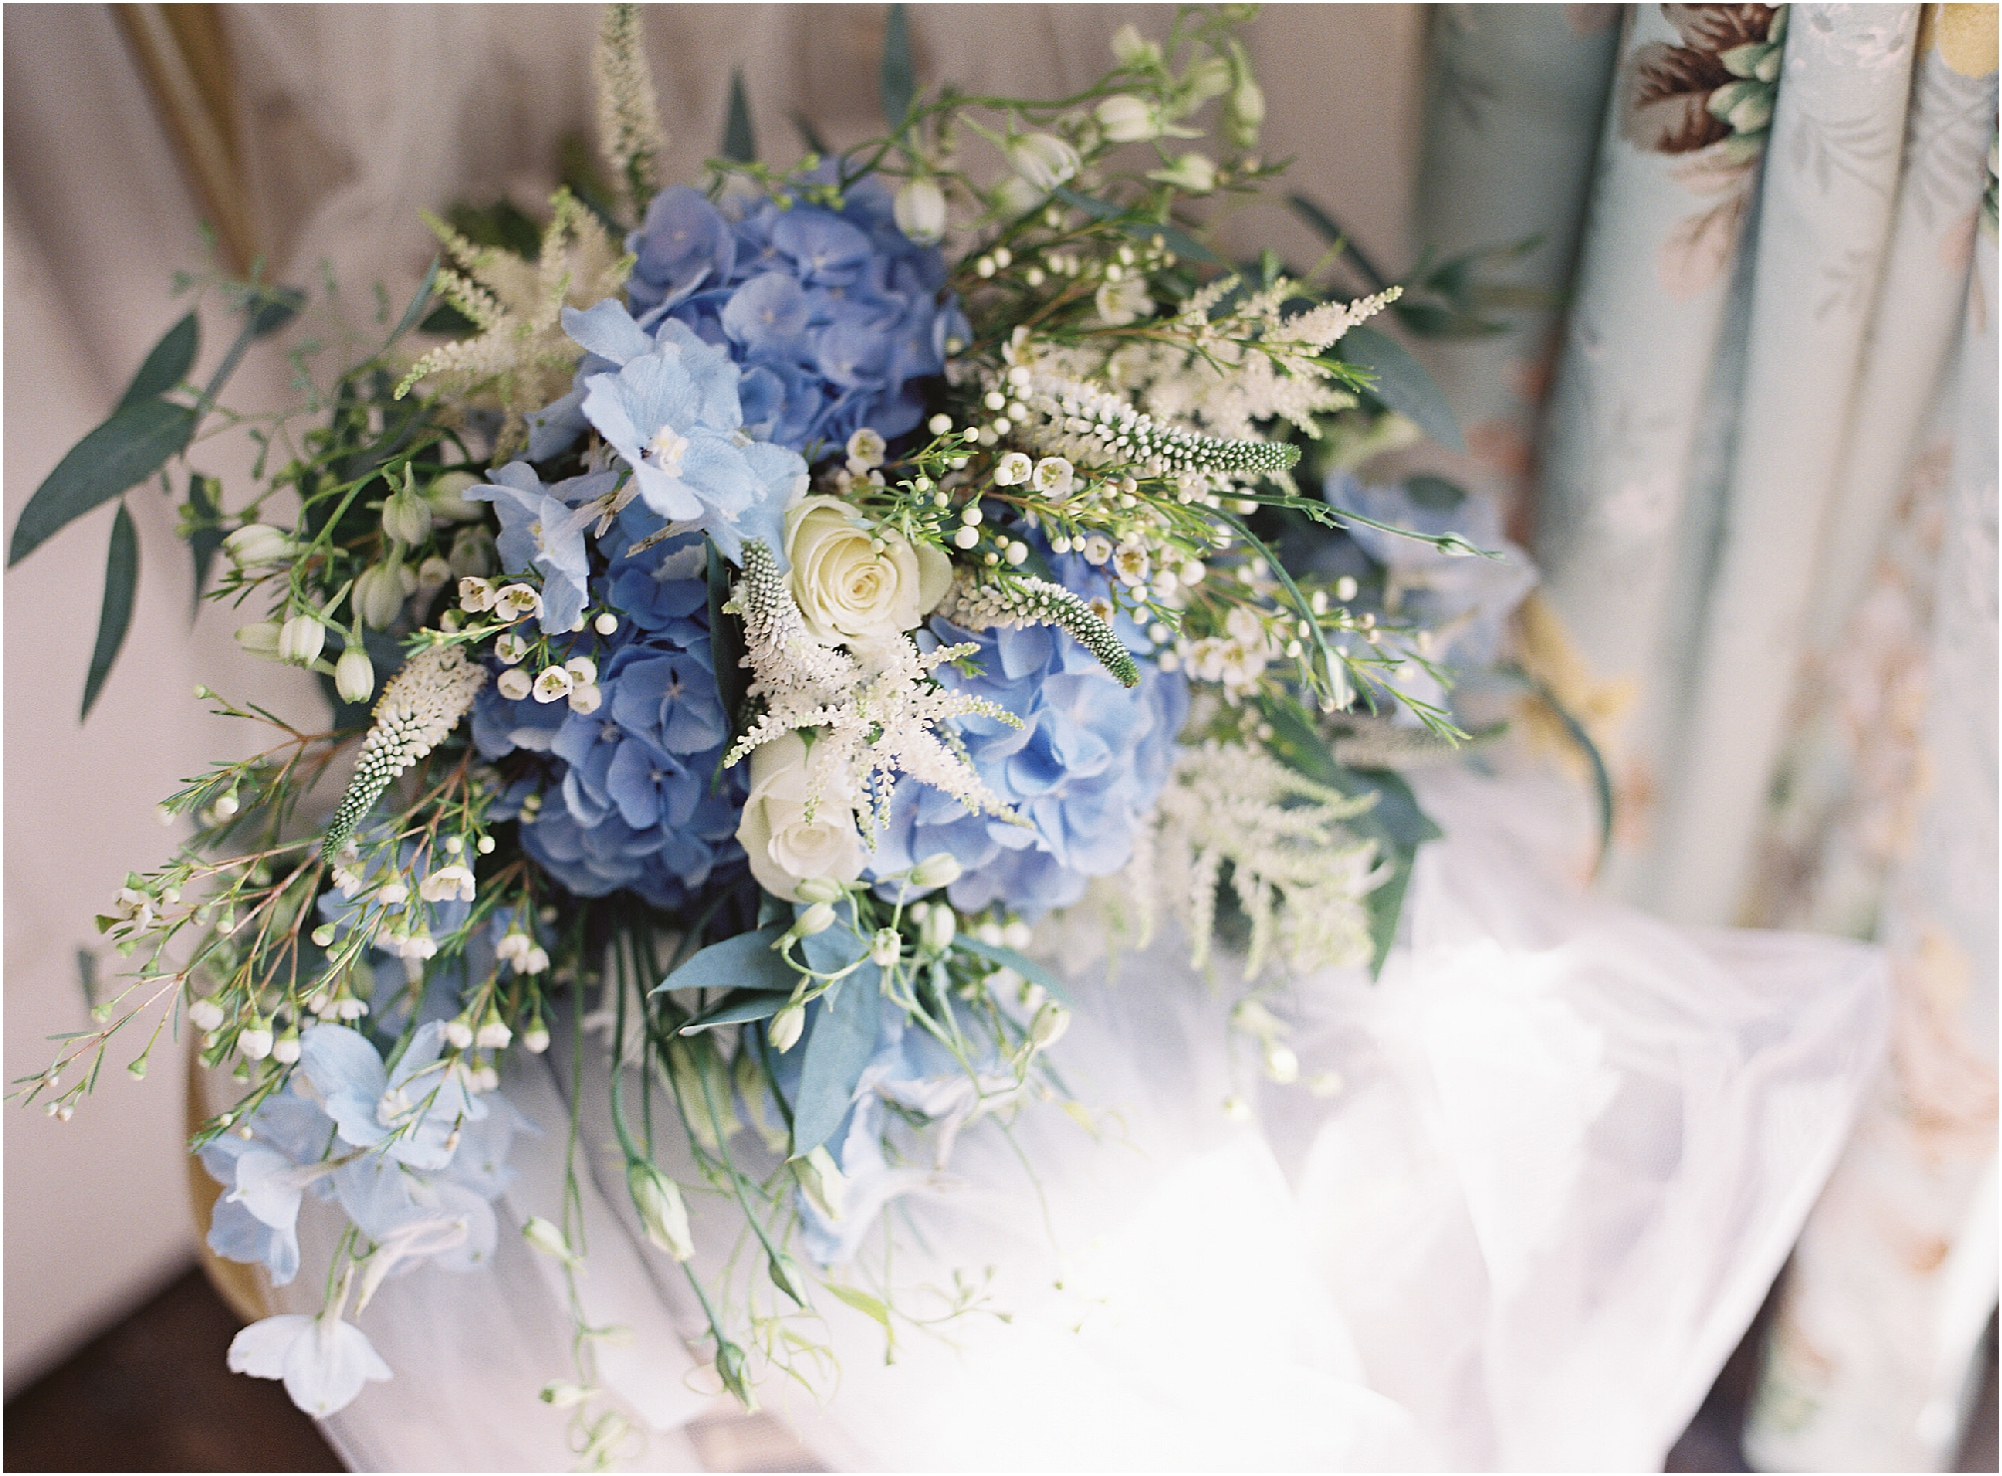 Blue and white bridal bouquet laying on a chair with wedding veil